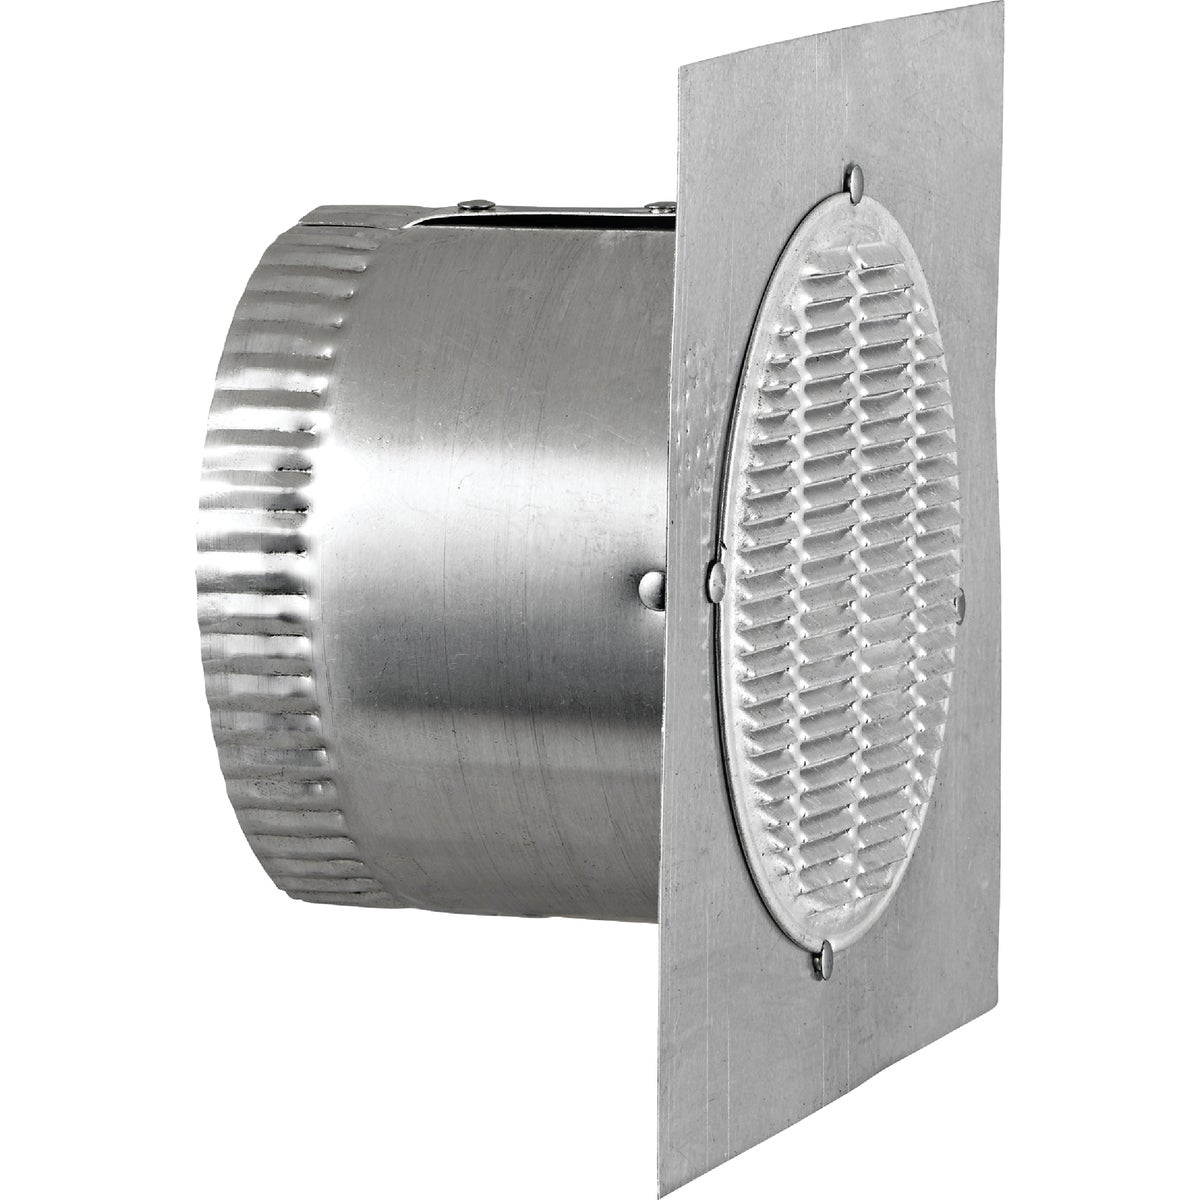 BATHROOM FAN EAVE VENT - 142 by Lambro Industries